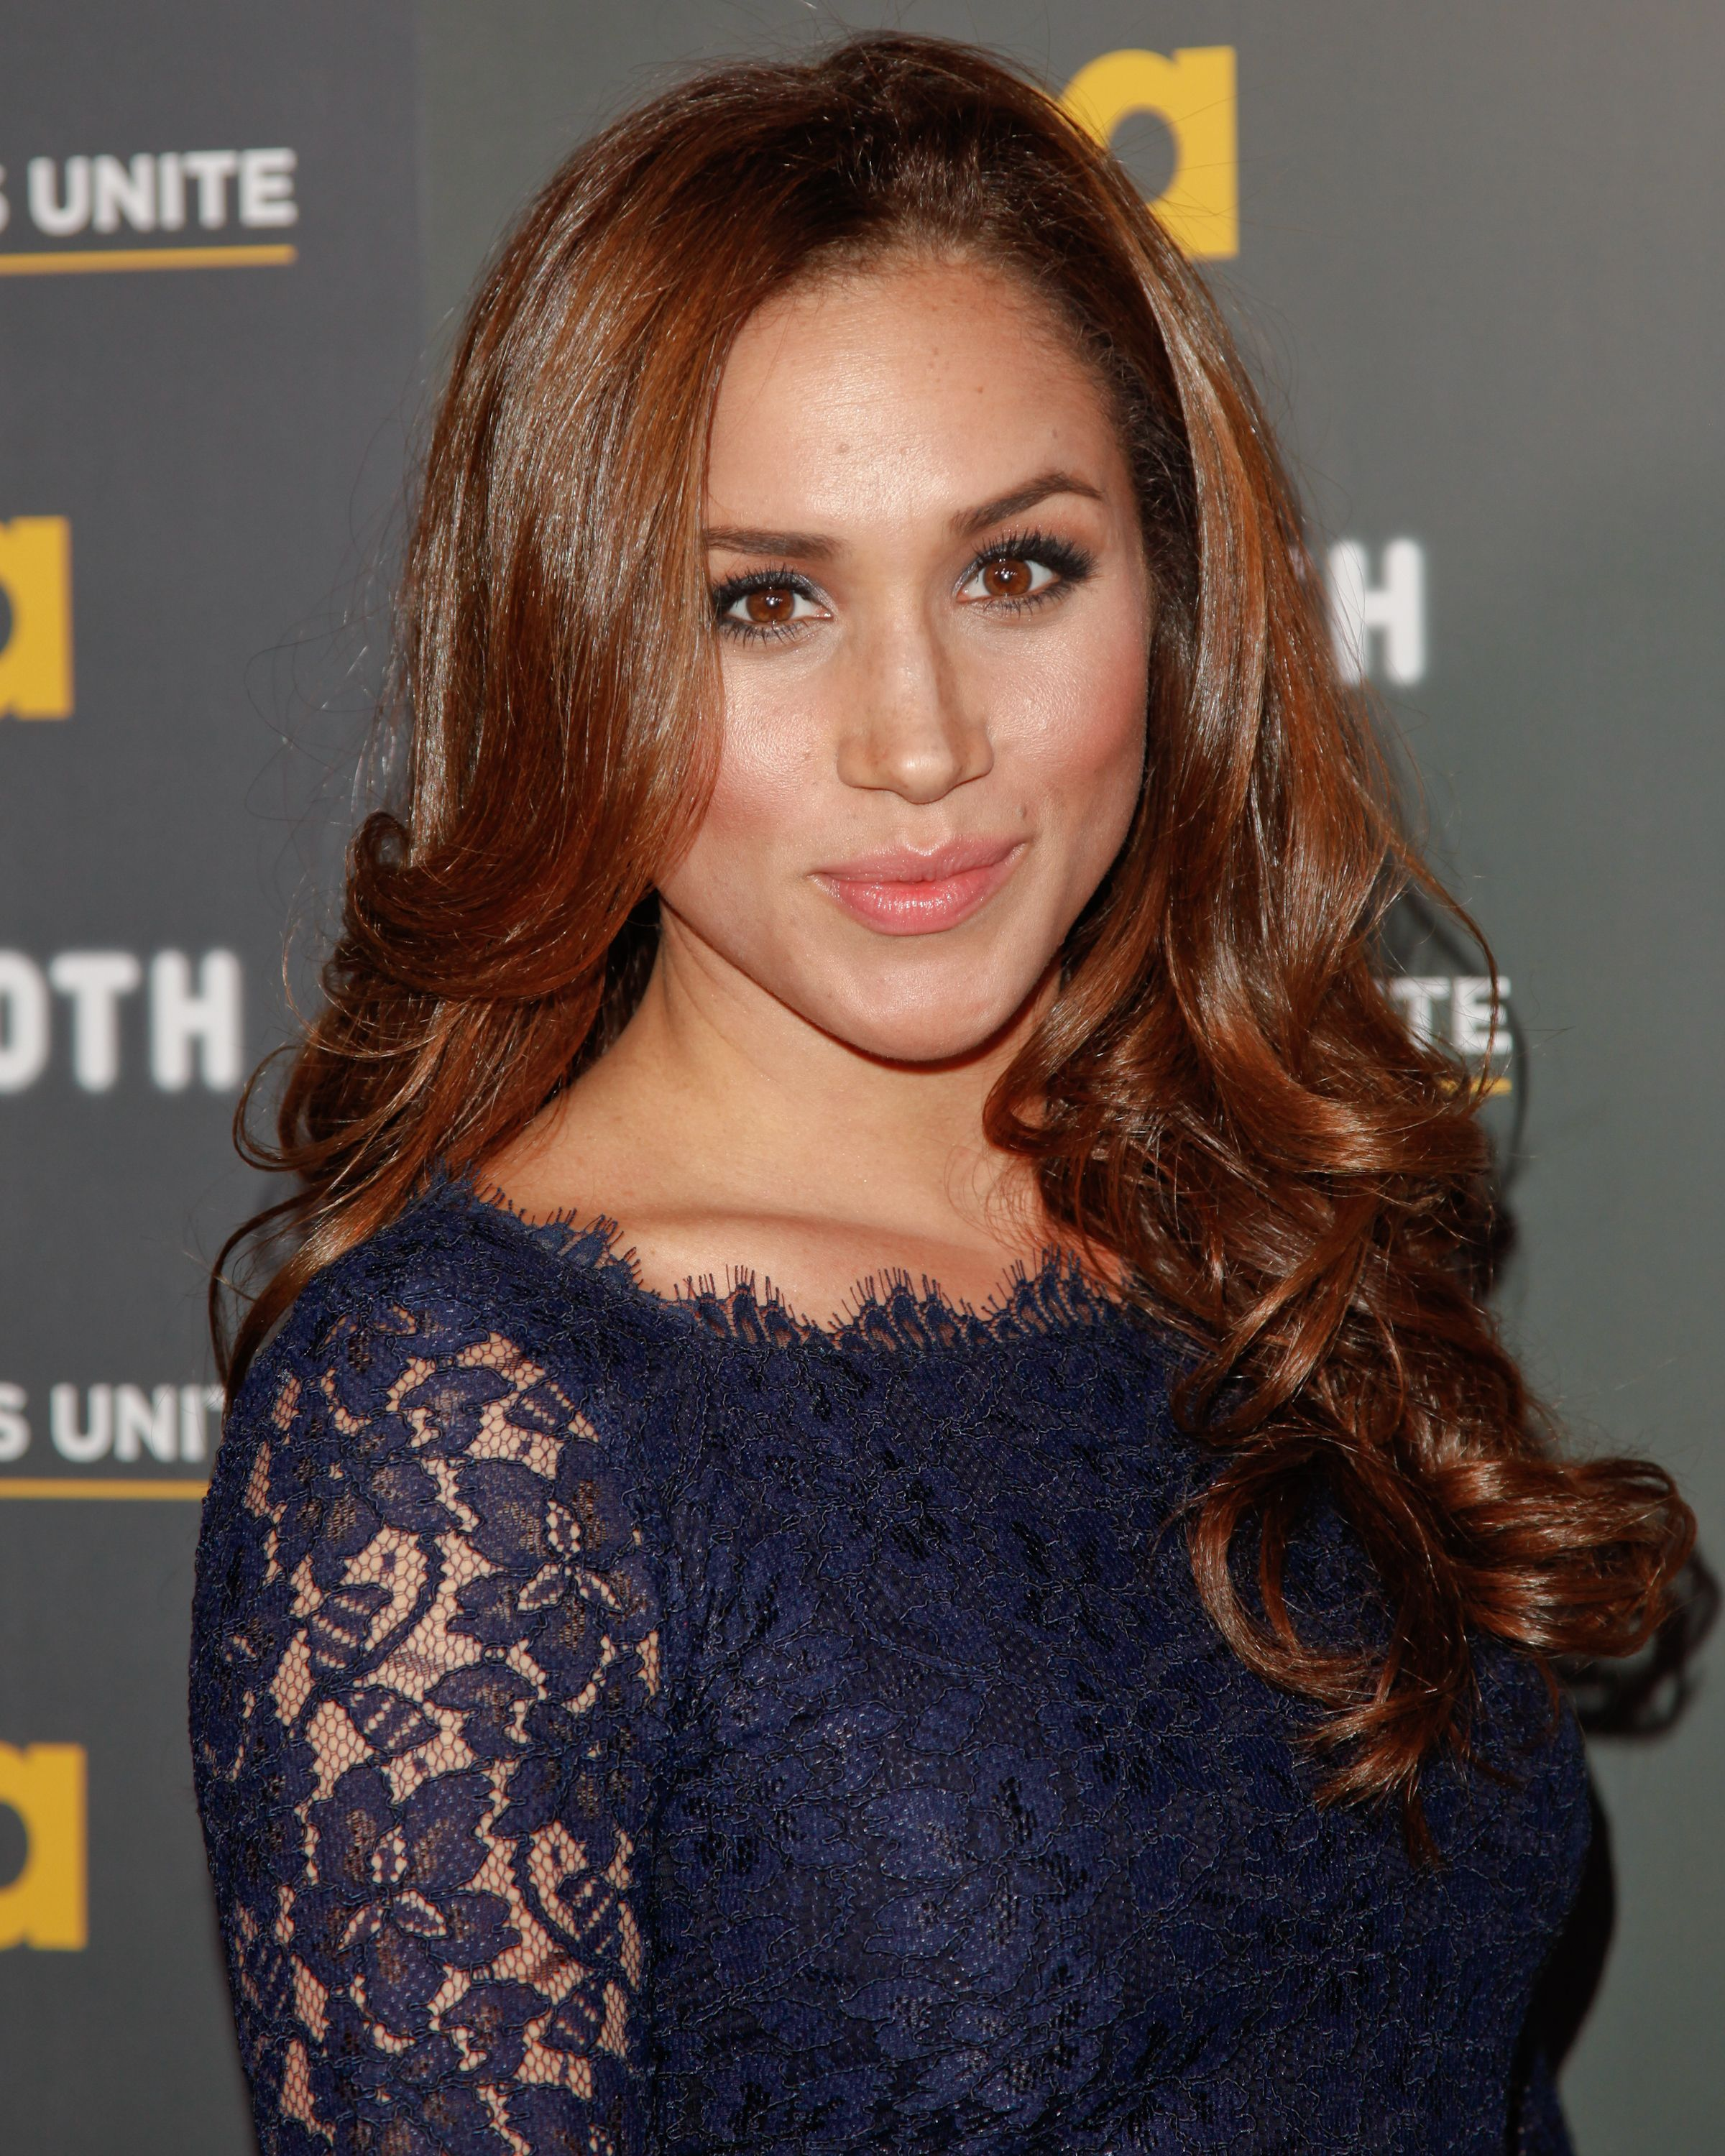 """Meghan Markle during the USA Network and The Moth presentation of """"A More Perfect Union: Stories Of Prejudice And Power"""" at Pacific Design Center on February 15, 2012 in West Hollywood, California. 